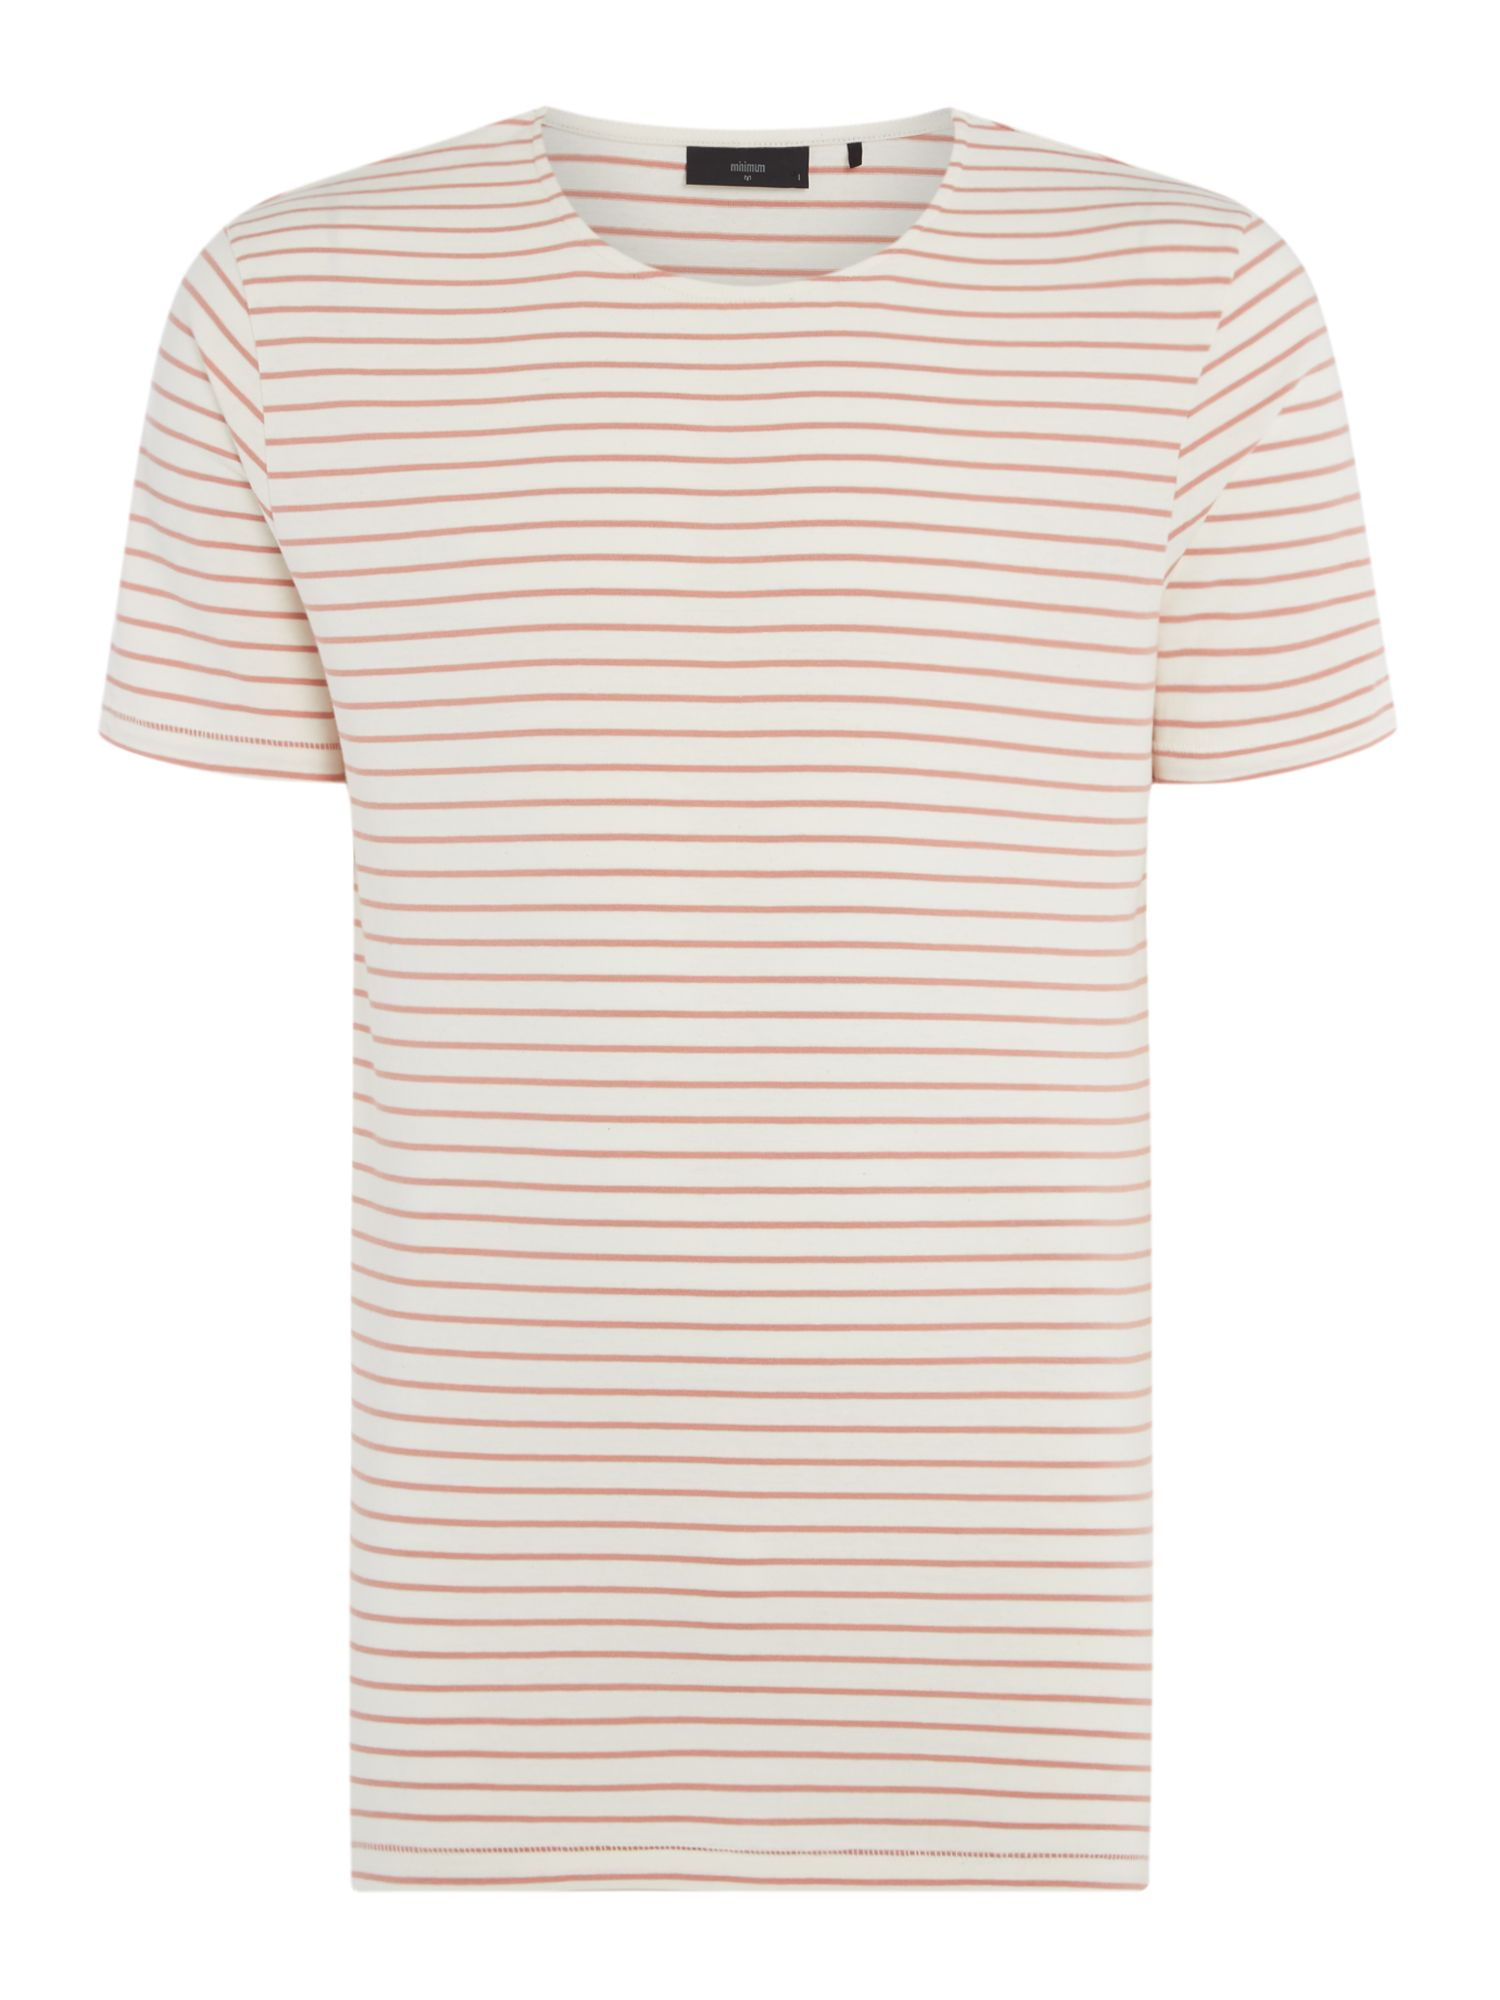 Men's Minimum Striped Crew Neck T-Shirt, Rose